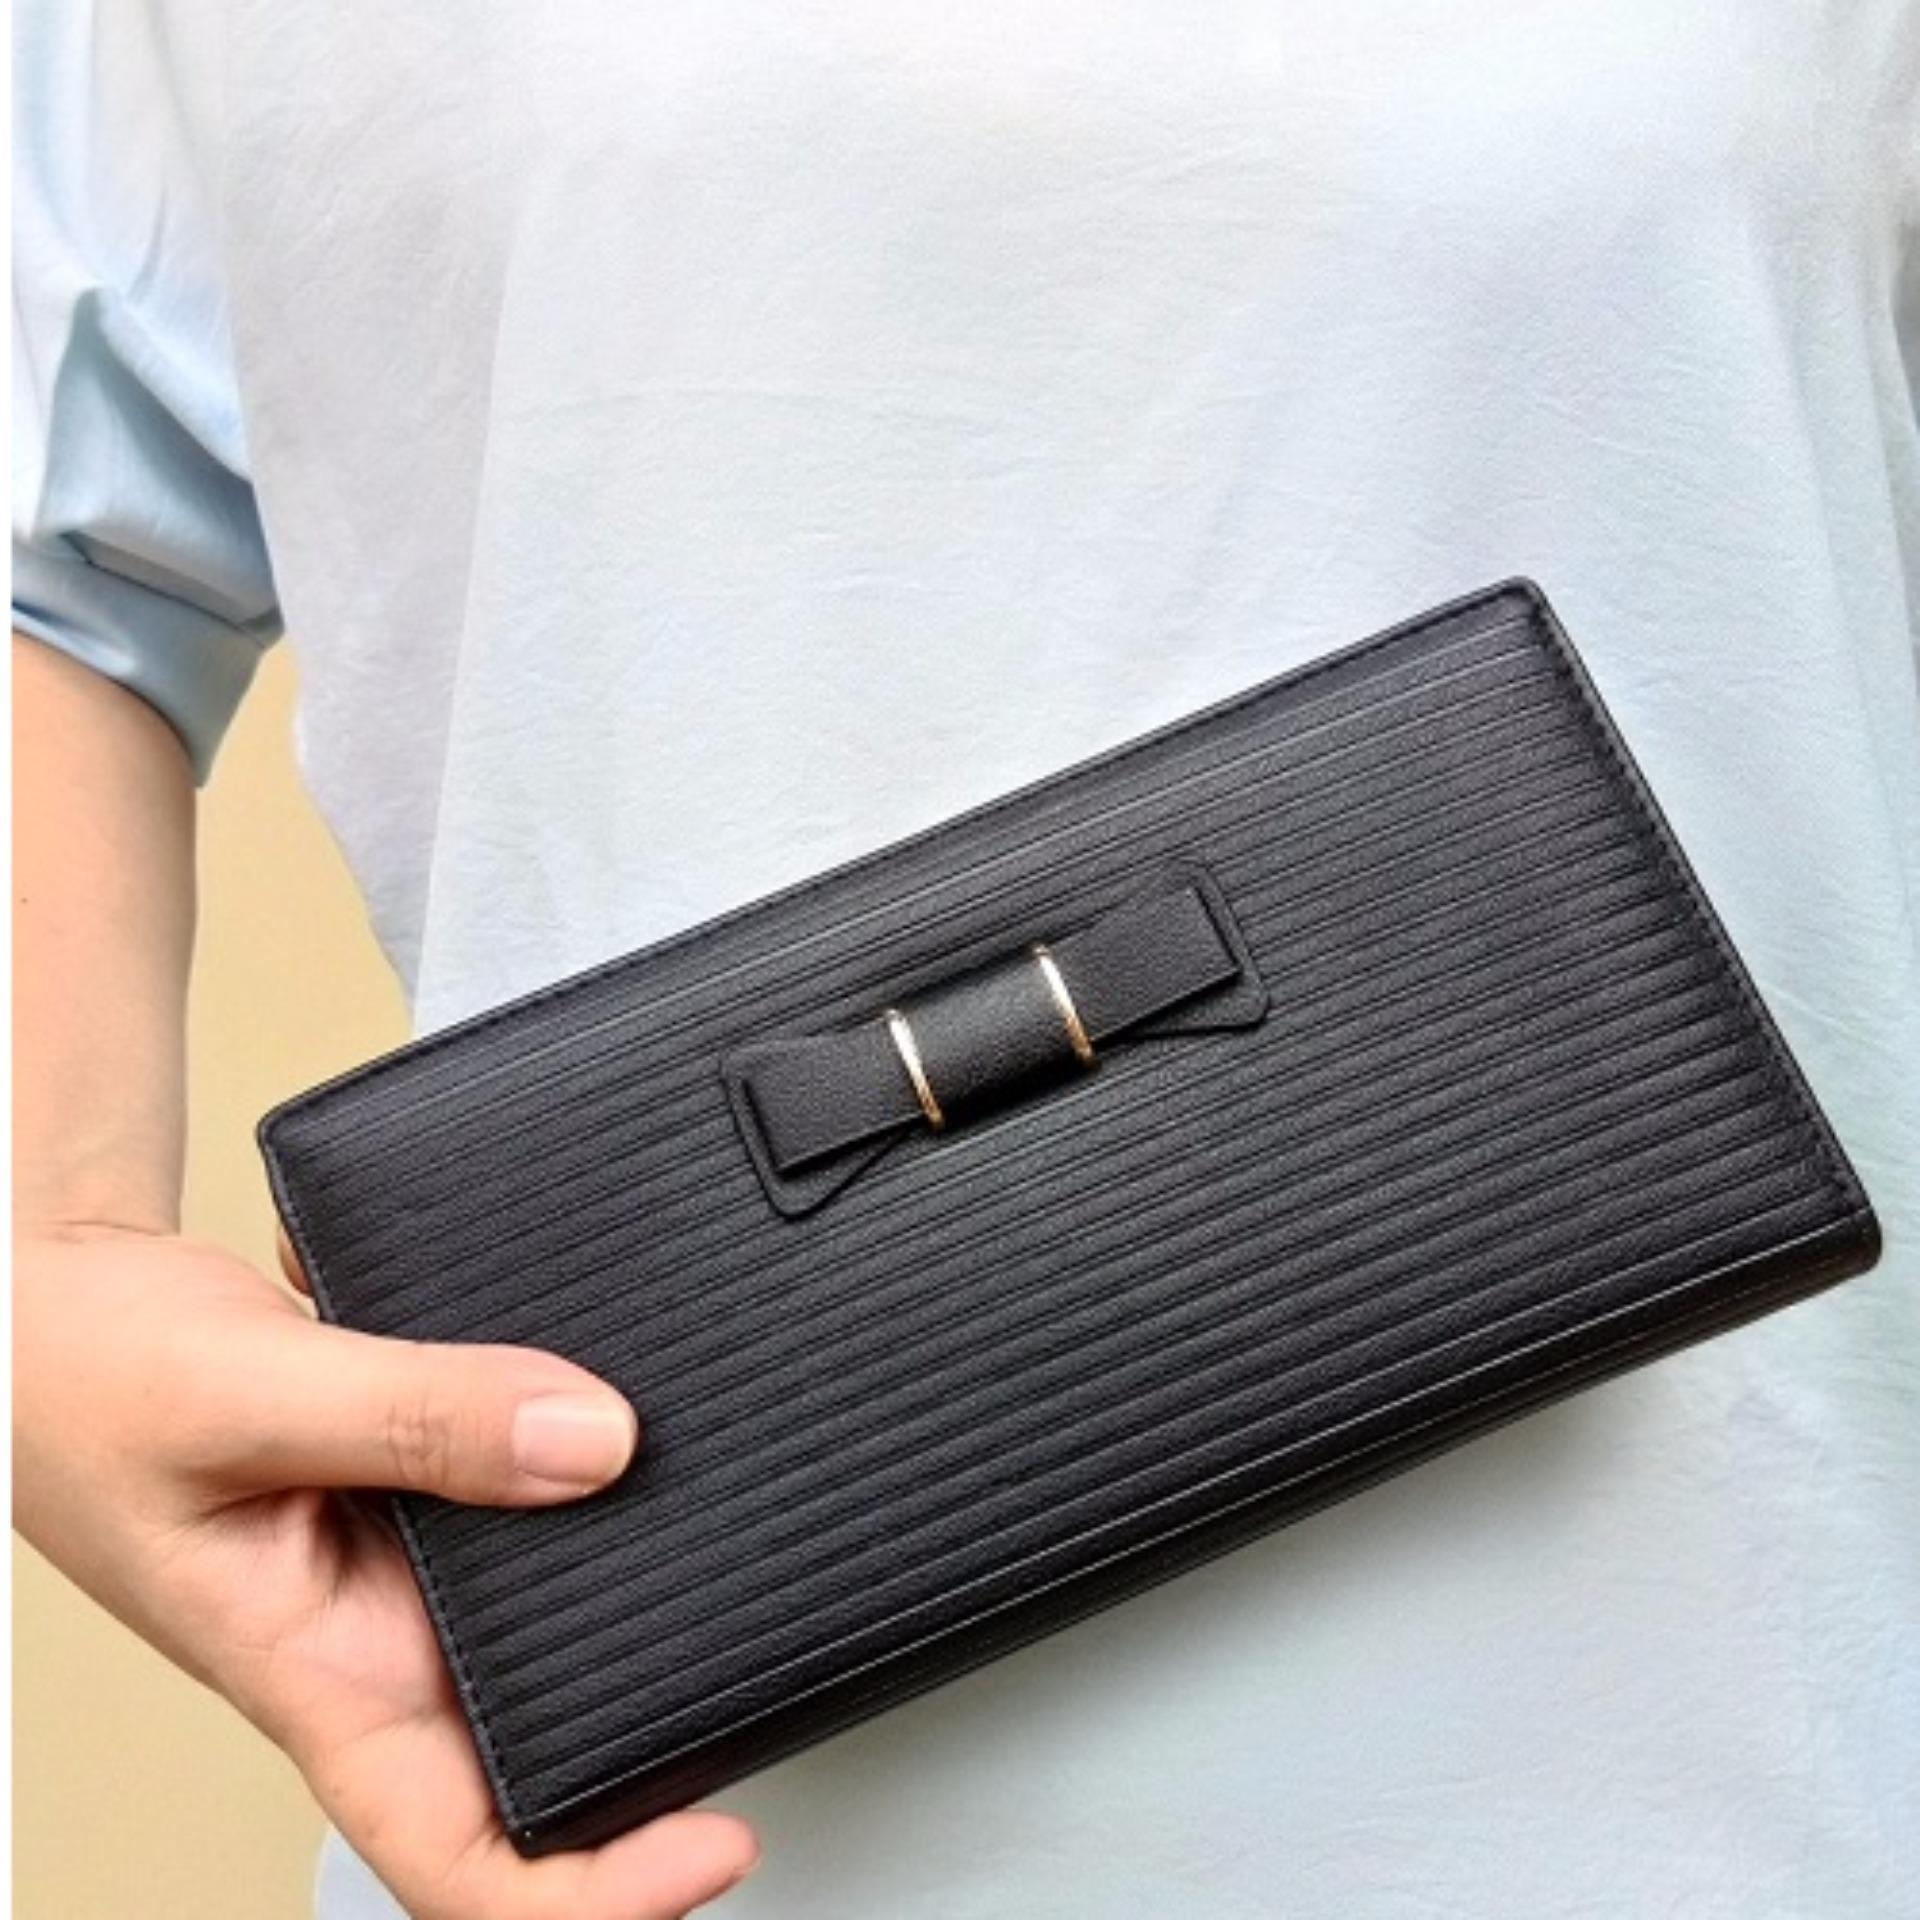 Jcf Multifungsi Dompet Clutch Wanita Fashion Branded Pu Leather Import Alice Black Bagus Dan Mewah High Quality Asli